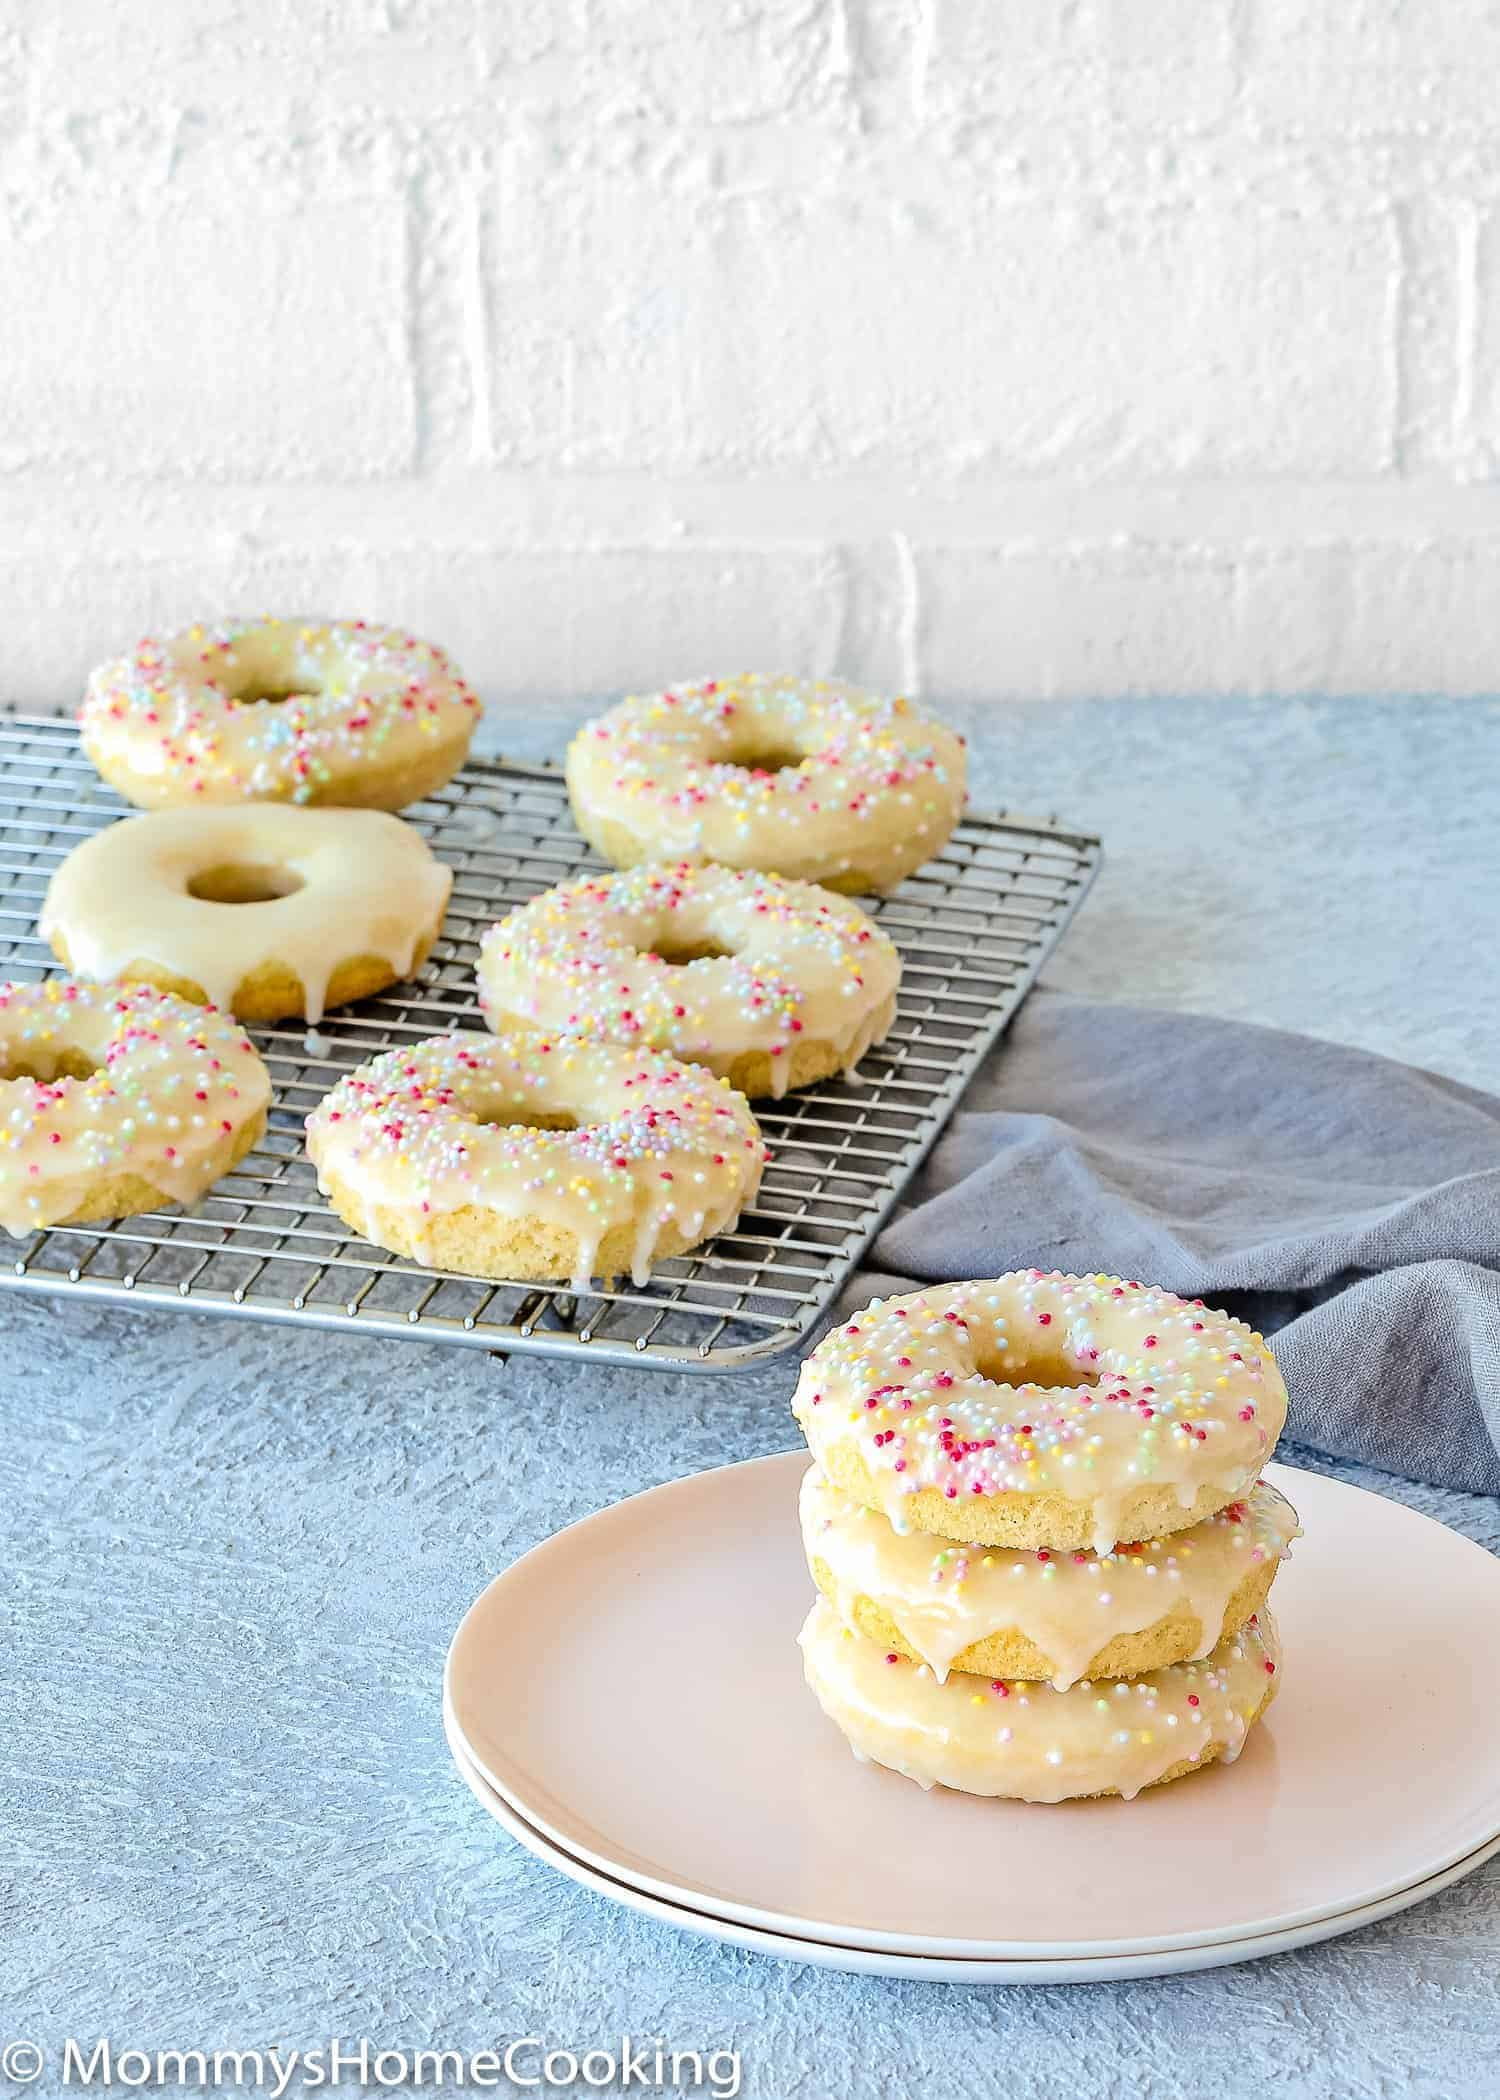 These Easy Eggless Baked Donuts are heavenly moist and cakey! This basic eggless baked donuts recipe is simple and easy to follow. They're perfect for any occasion and sure to be your family's favorite! https://mommyshomecooking.com